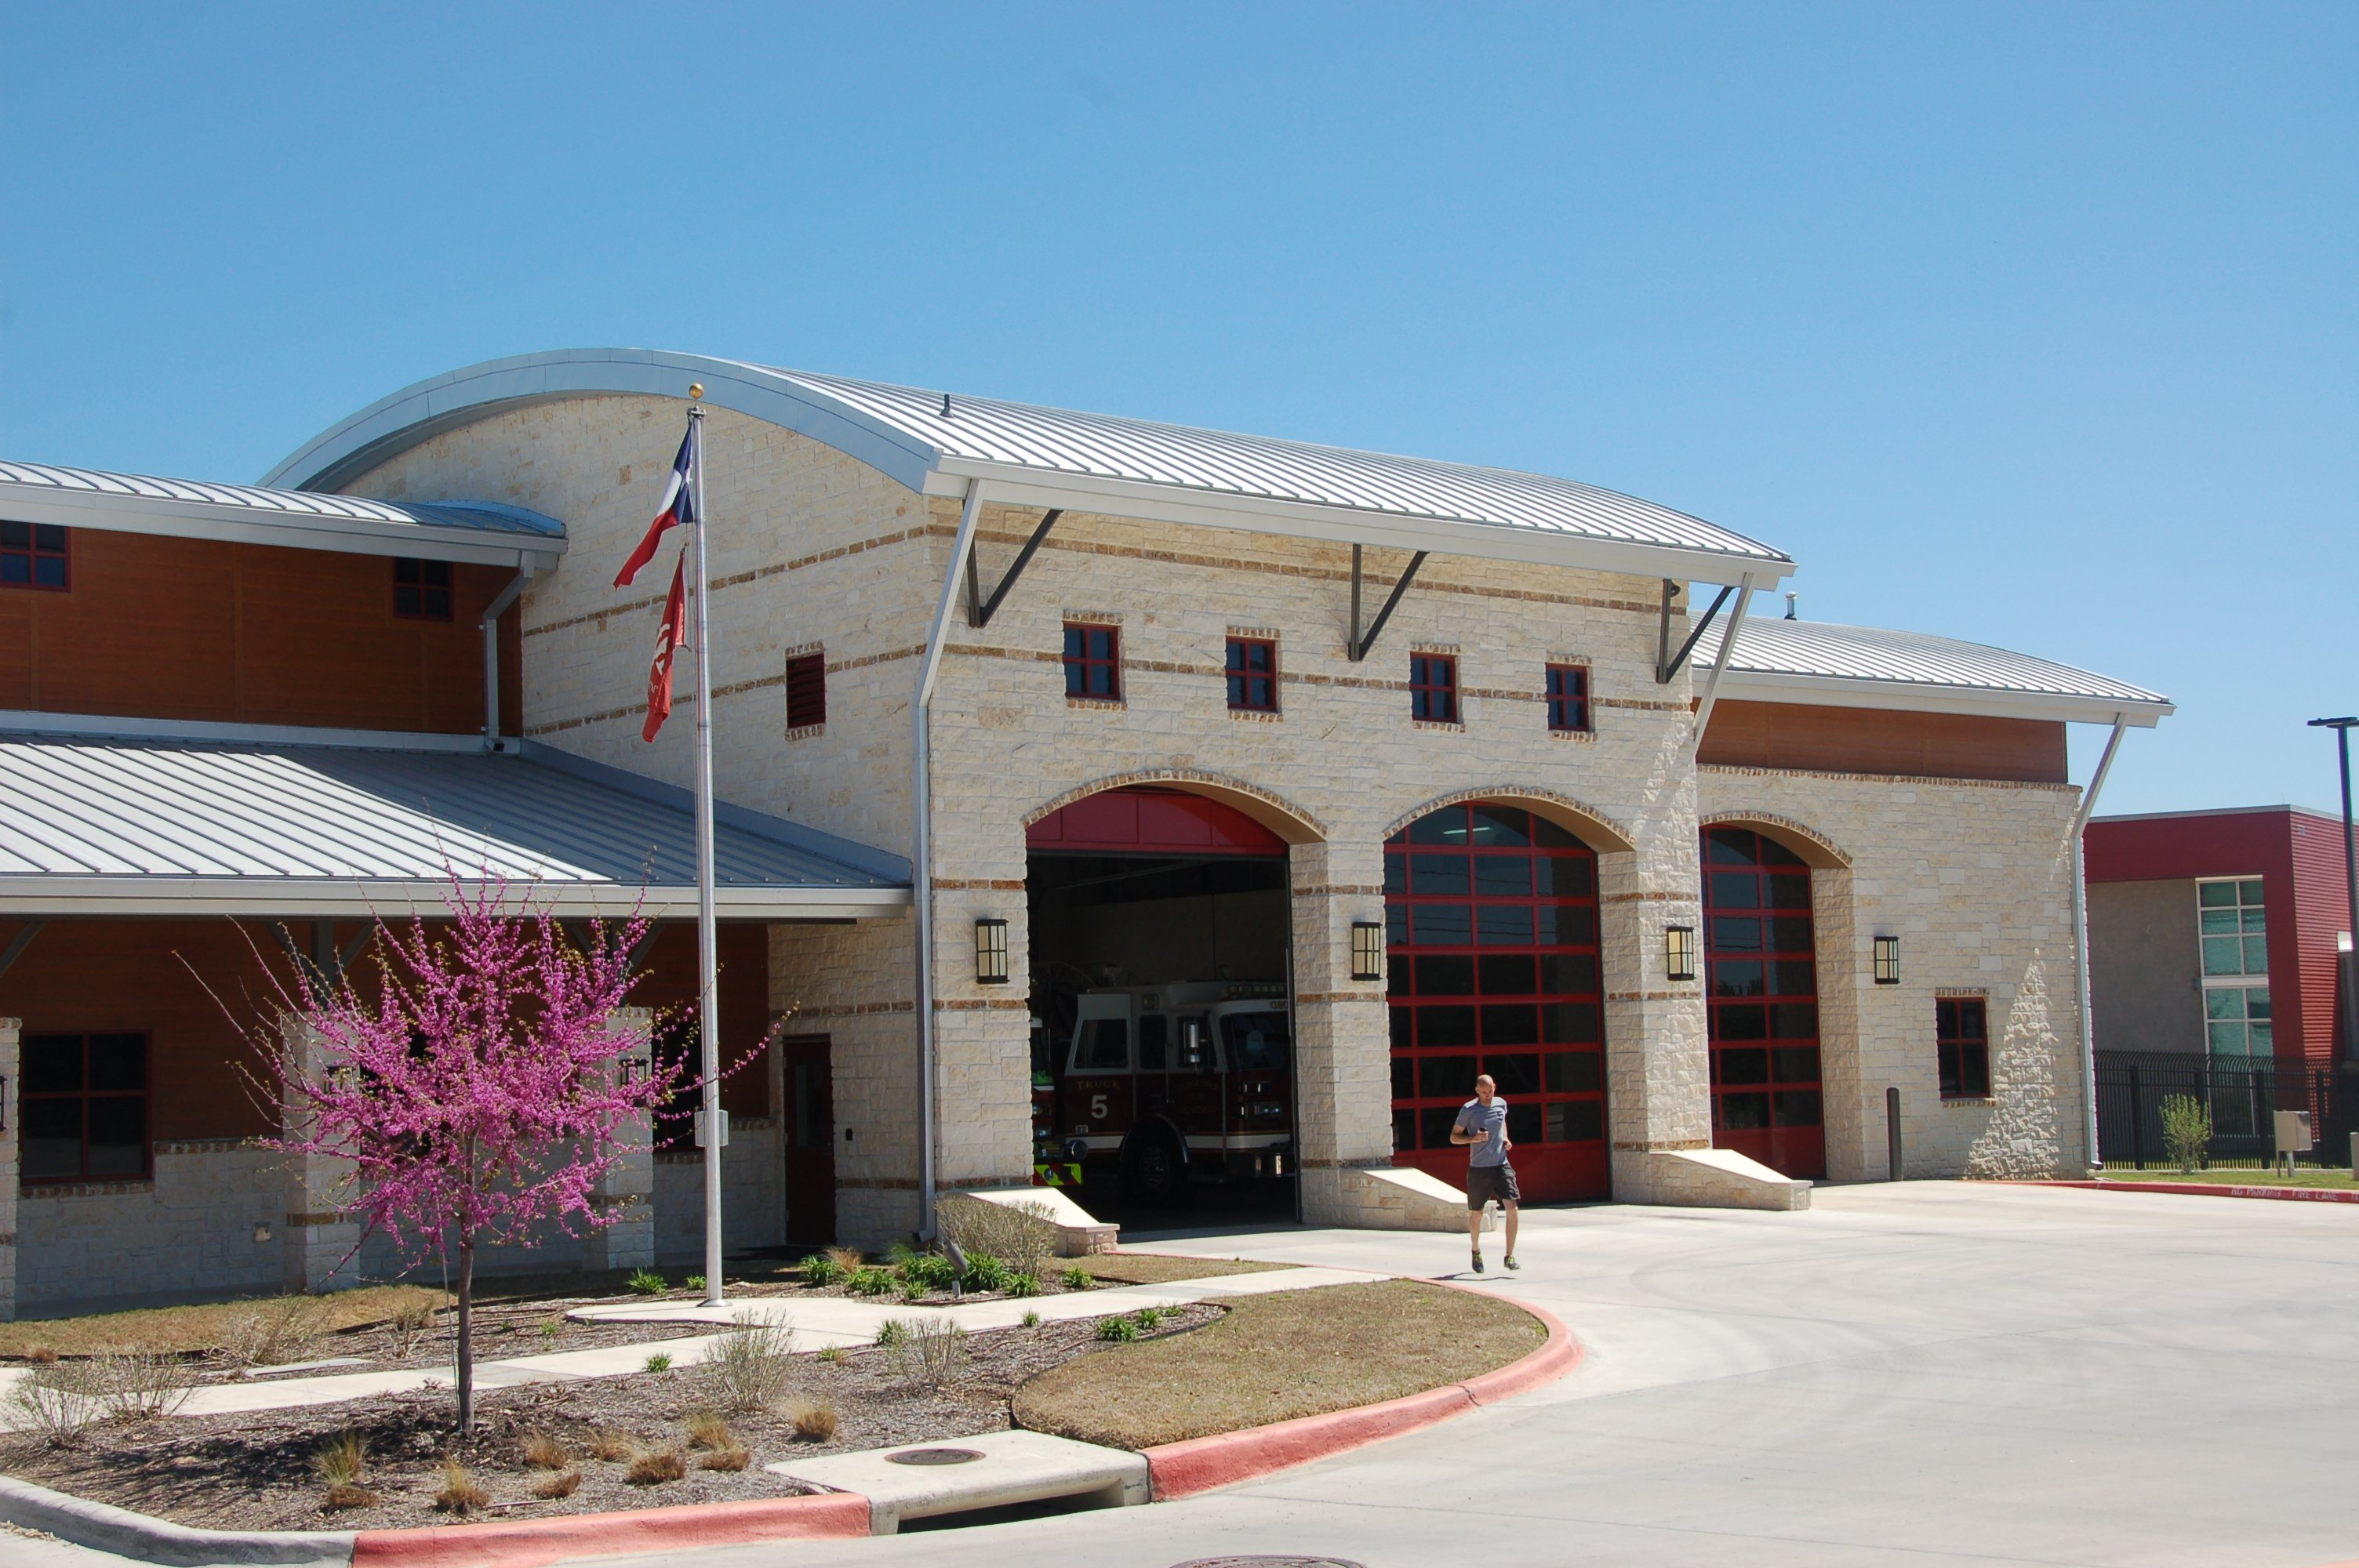 238T Georgetown Fire Station